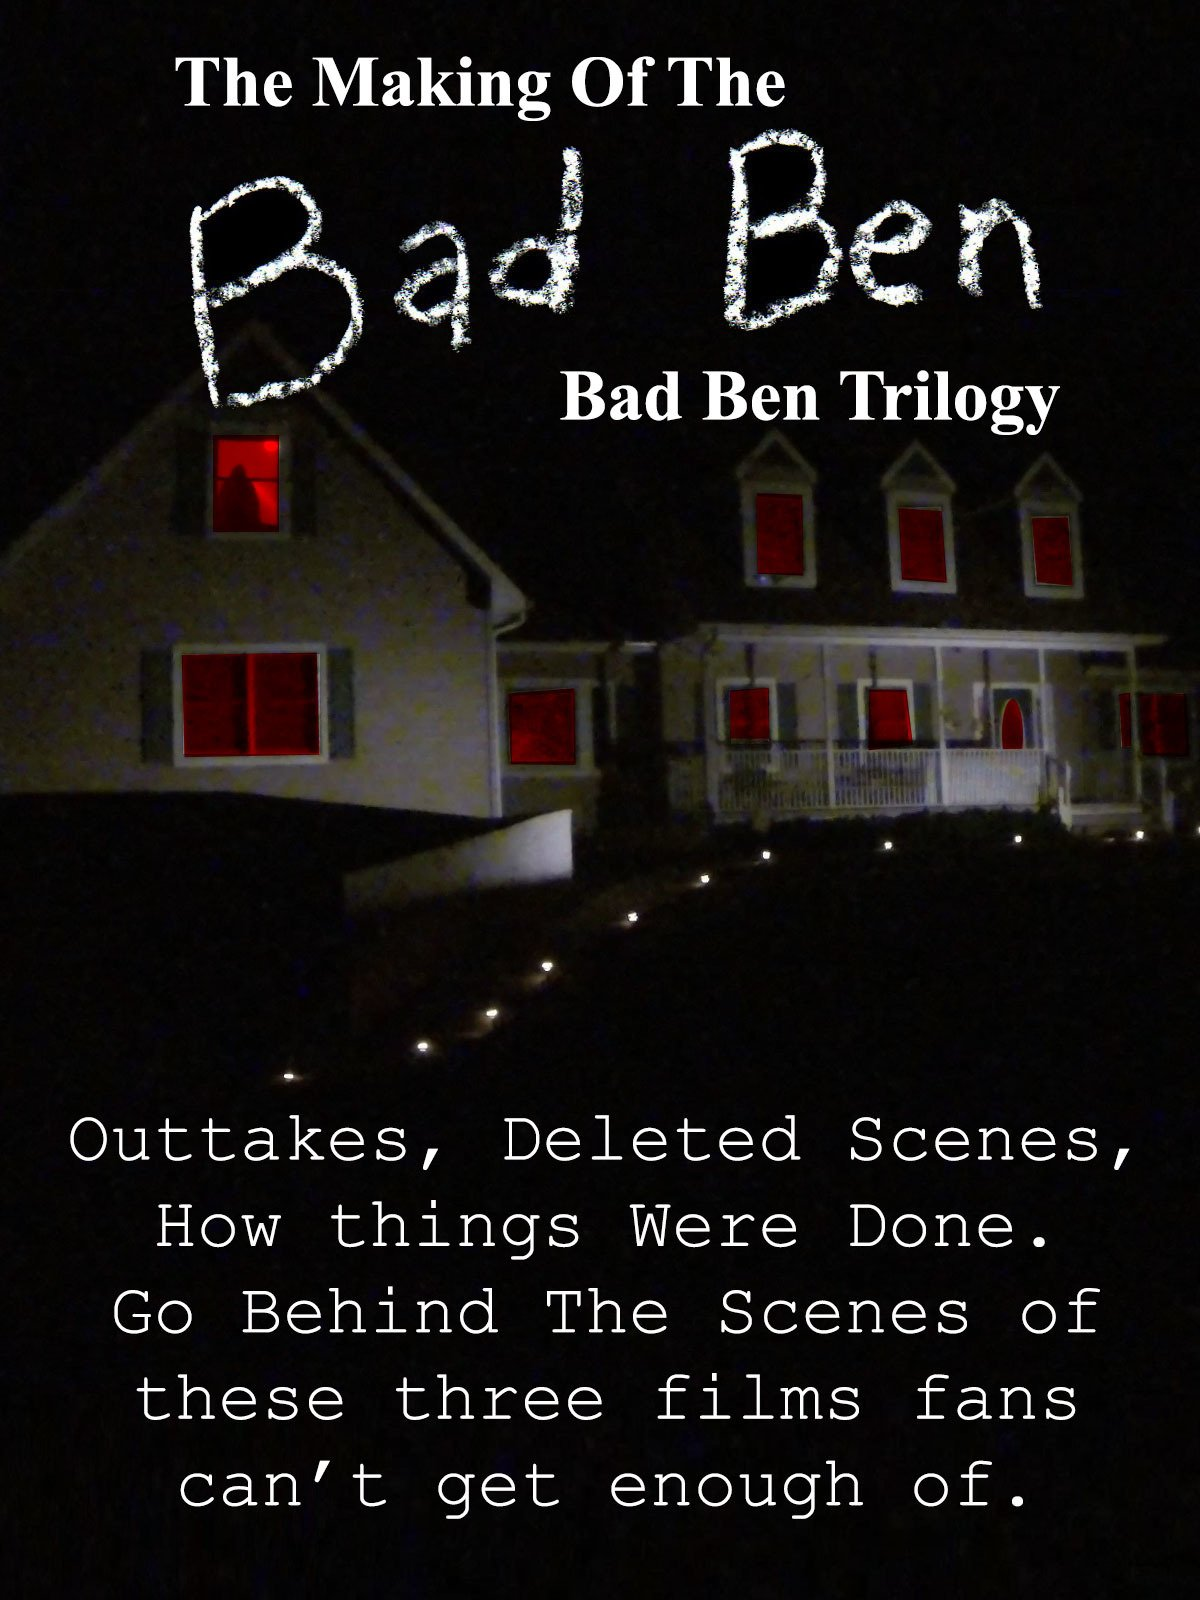 The Making Of The Bad Ben Trilogy